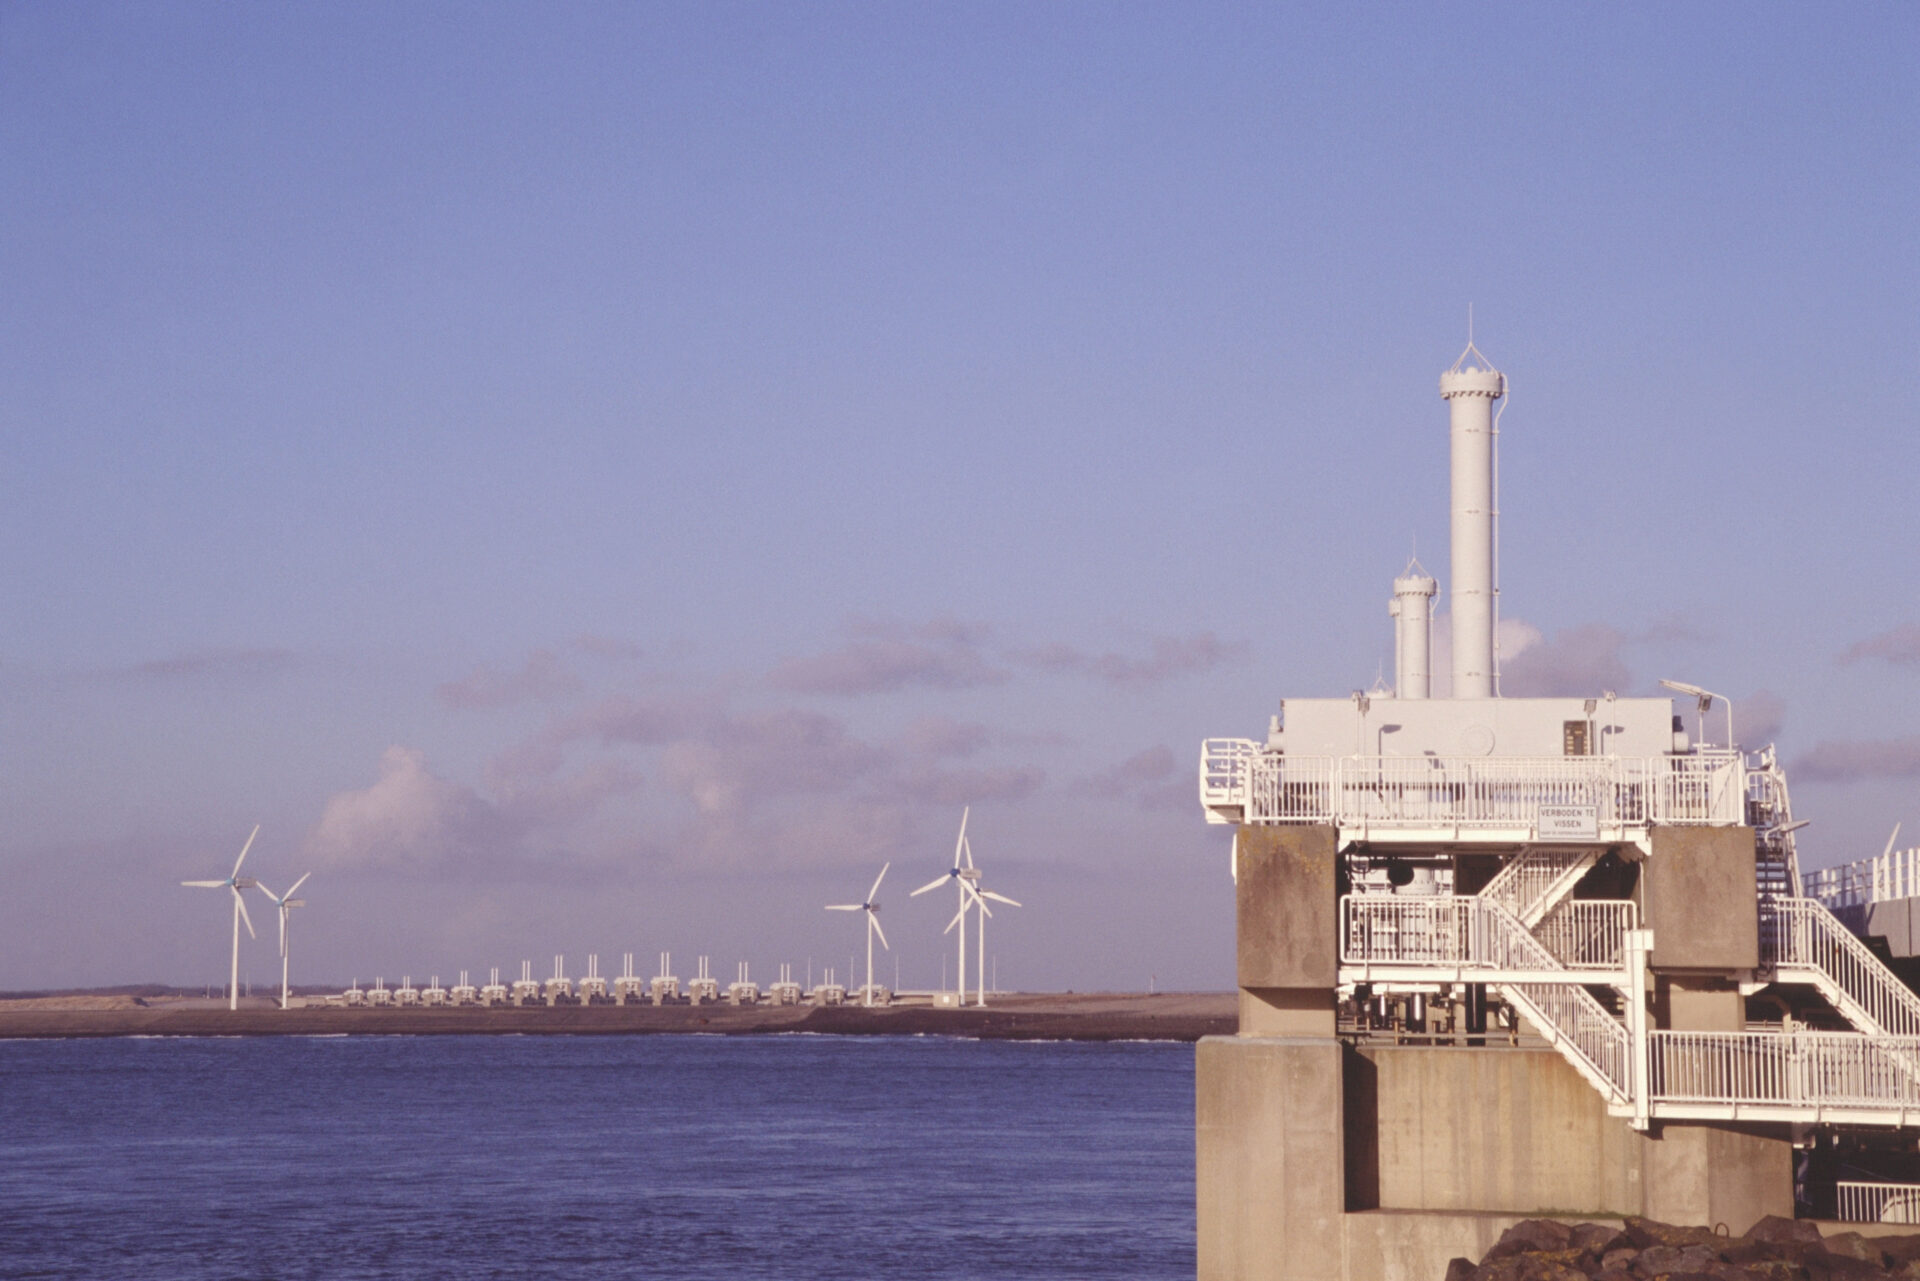 AKD9D0 Panoramic shot of part of the Oosterschelde storm barrier seen from the North Sea side Zeeland the Netherlands